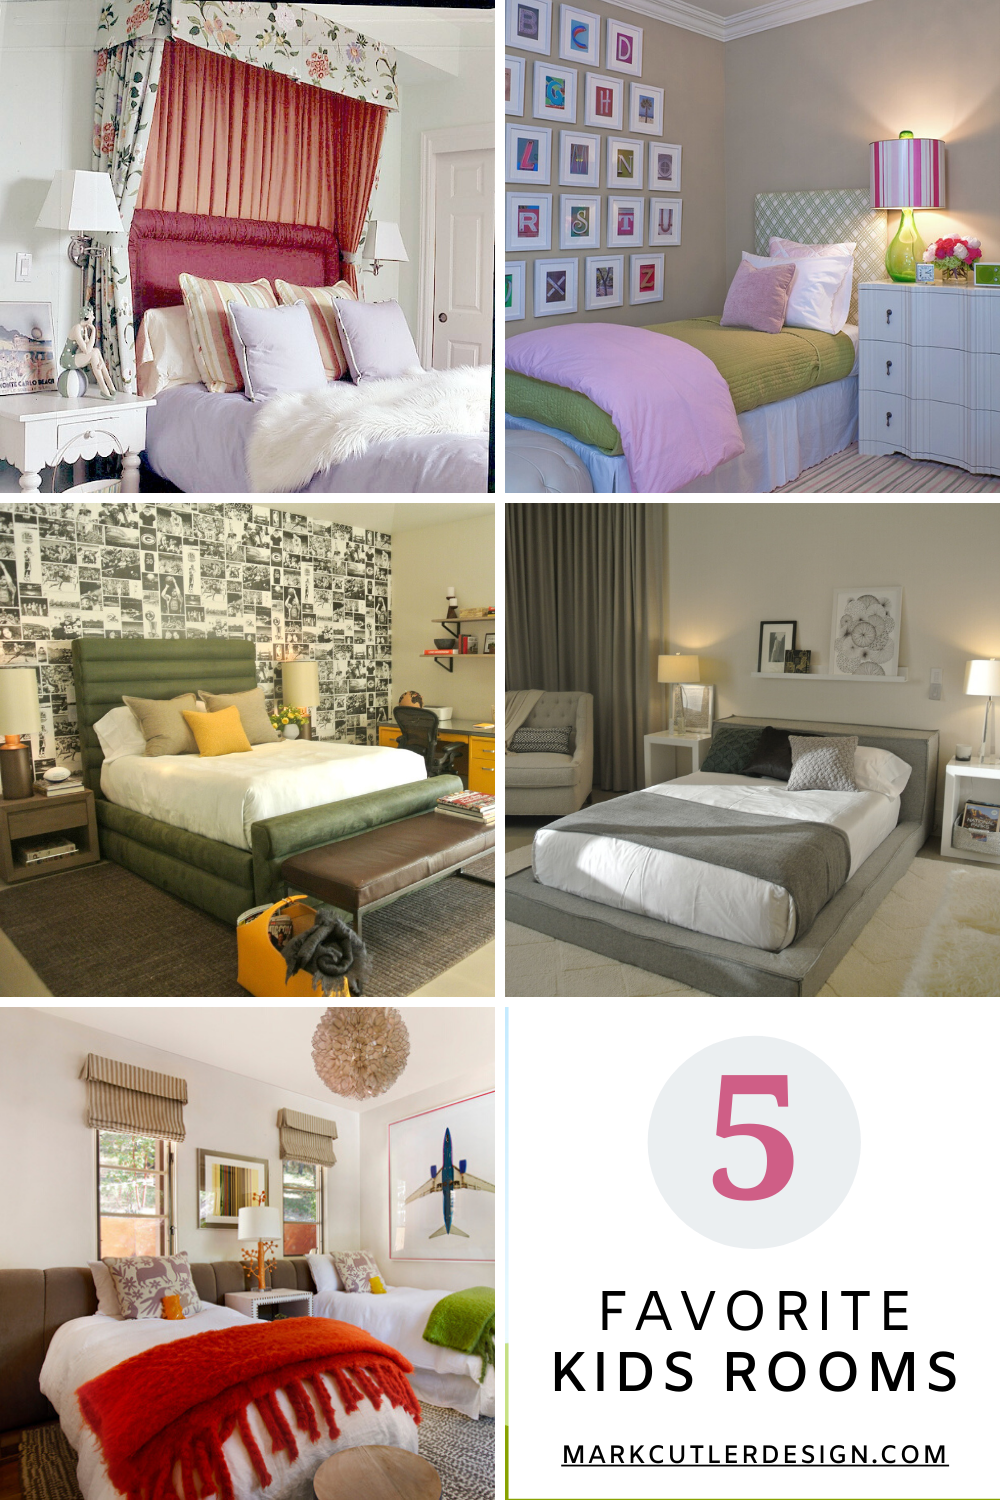 My 5 Favorite Kids Rooms From Modern To Traditional Kids Bedroom Designs Kids Room Design Room Design